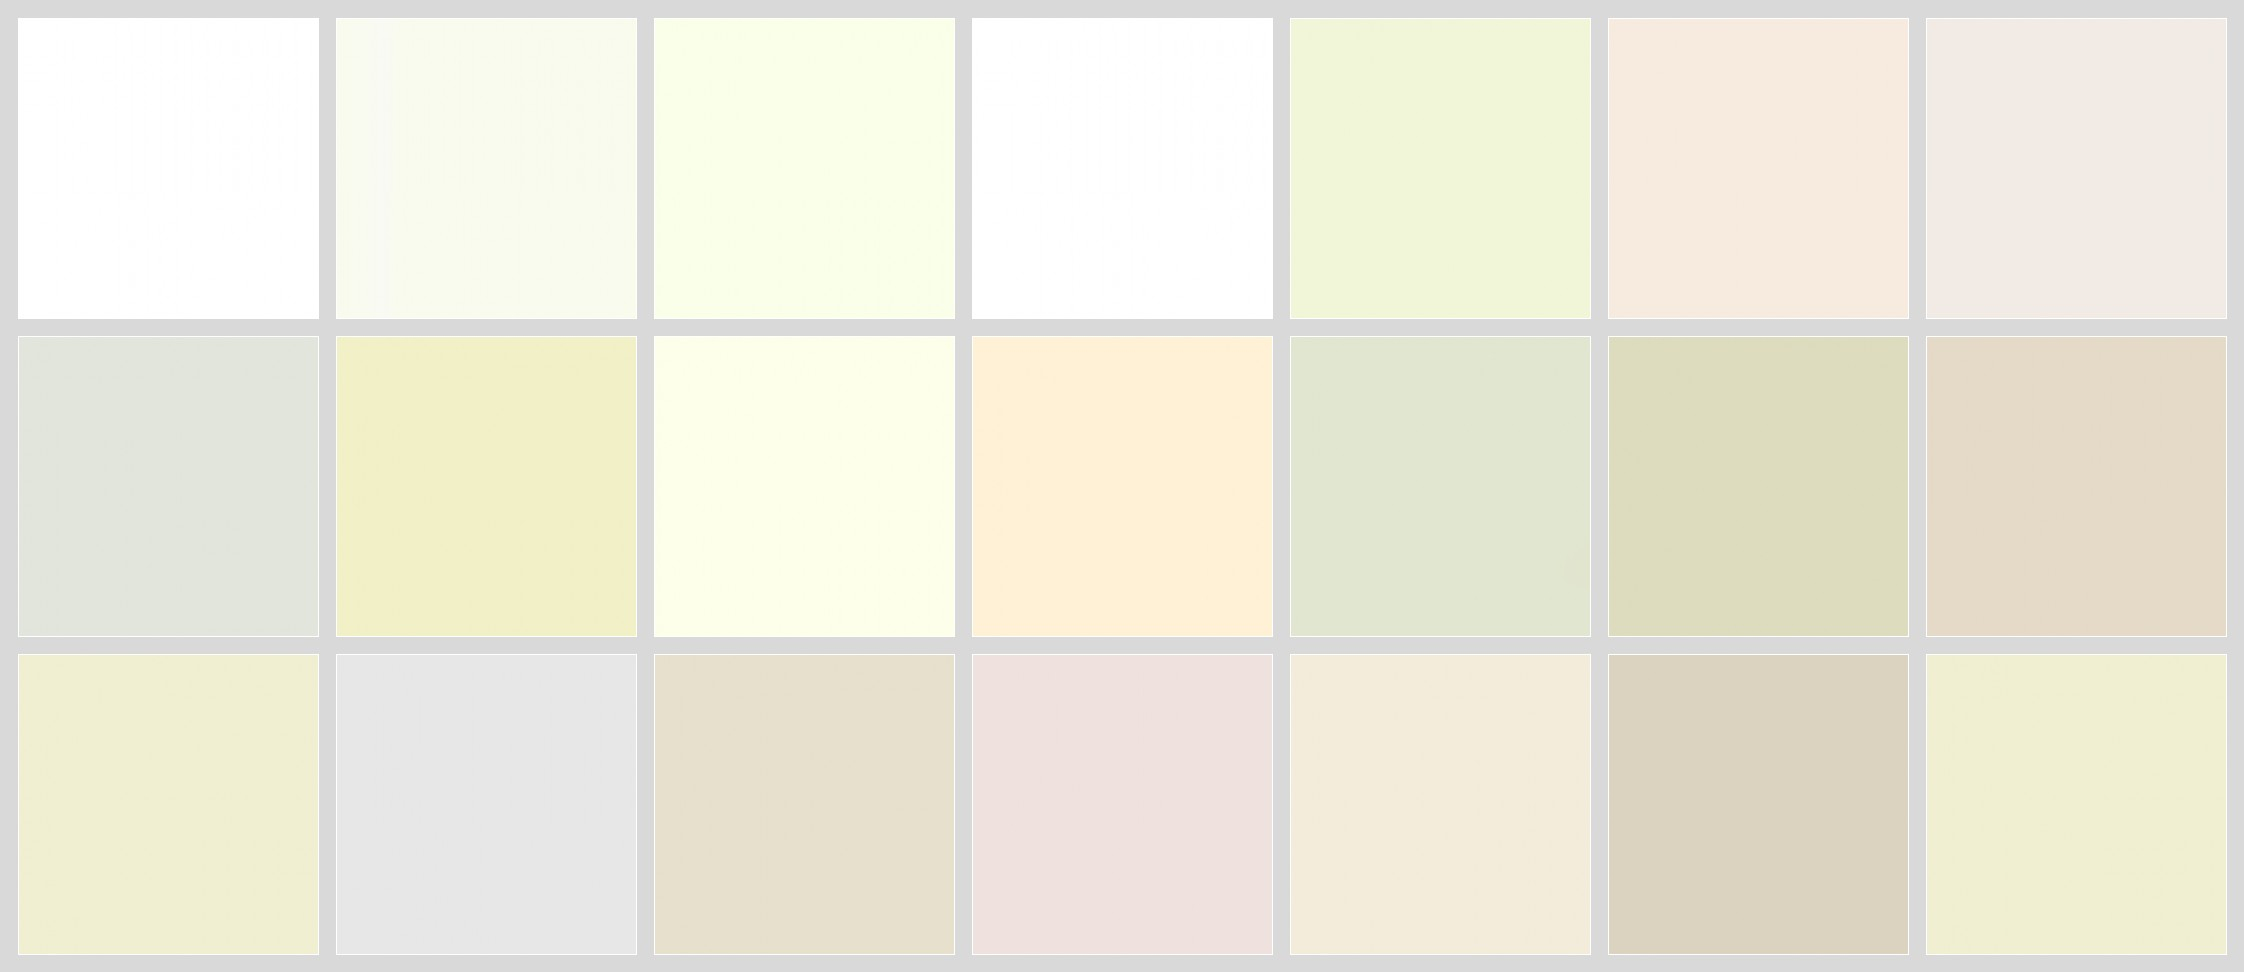 Farrow & Ball Paint: White and Off-White Colors | Flickr - Photo Sharing!